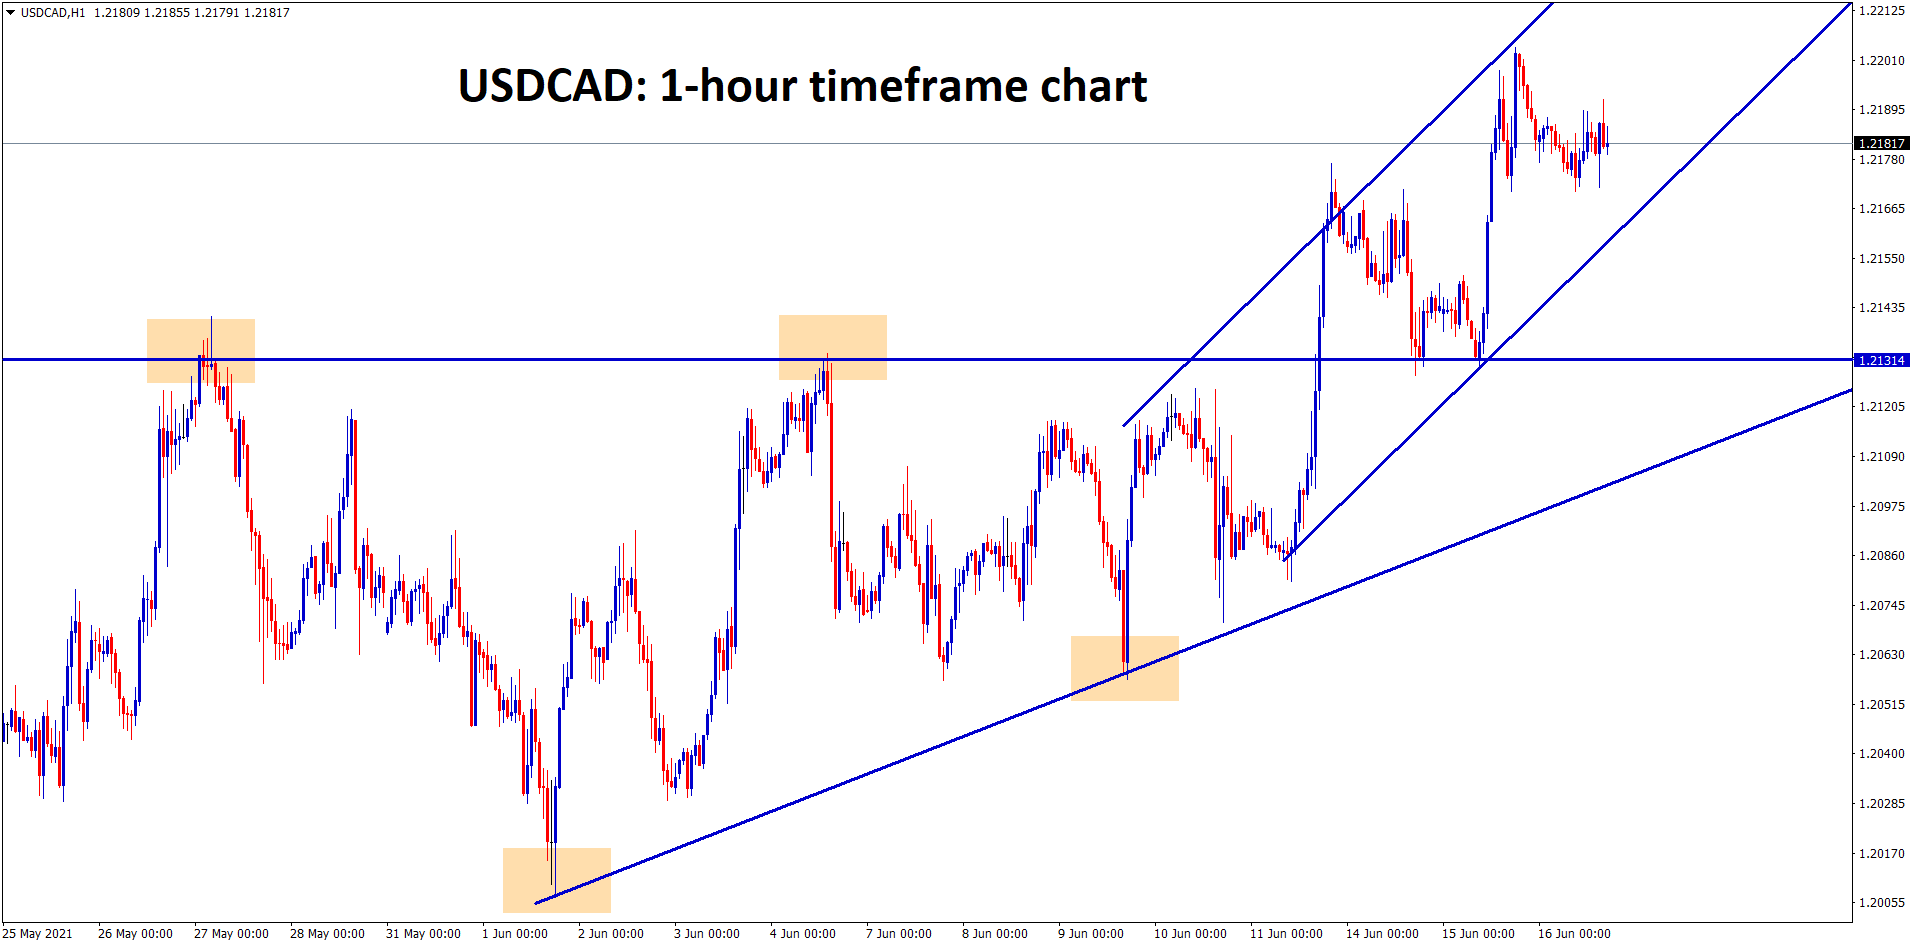 USDCAD after breaking the Ascending Triangle top is moving now between the ascending channel range